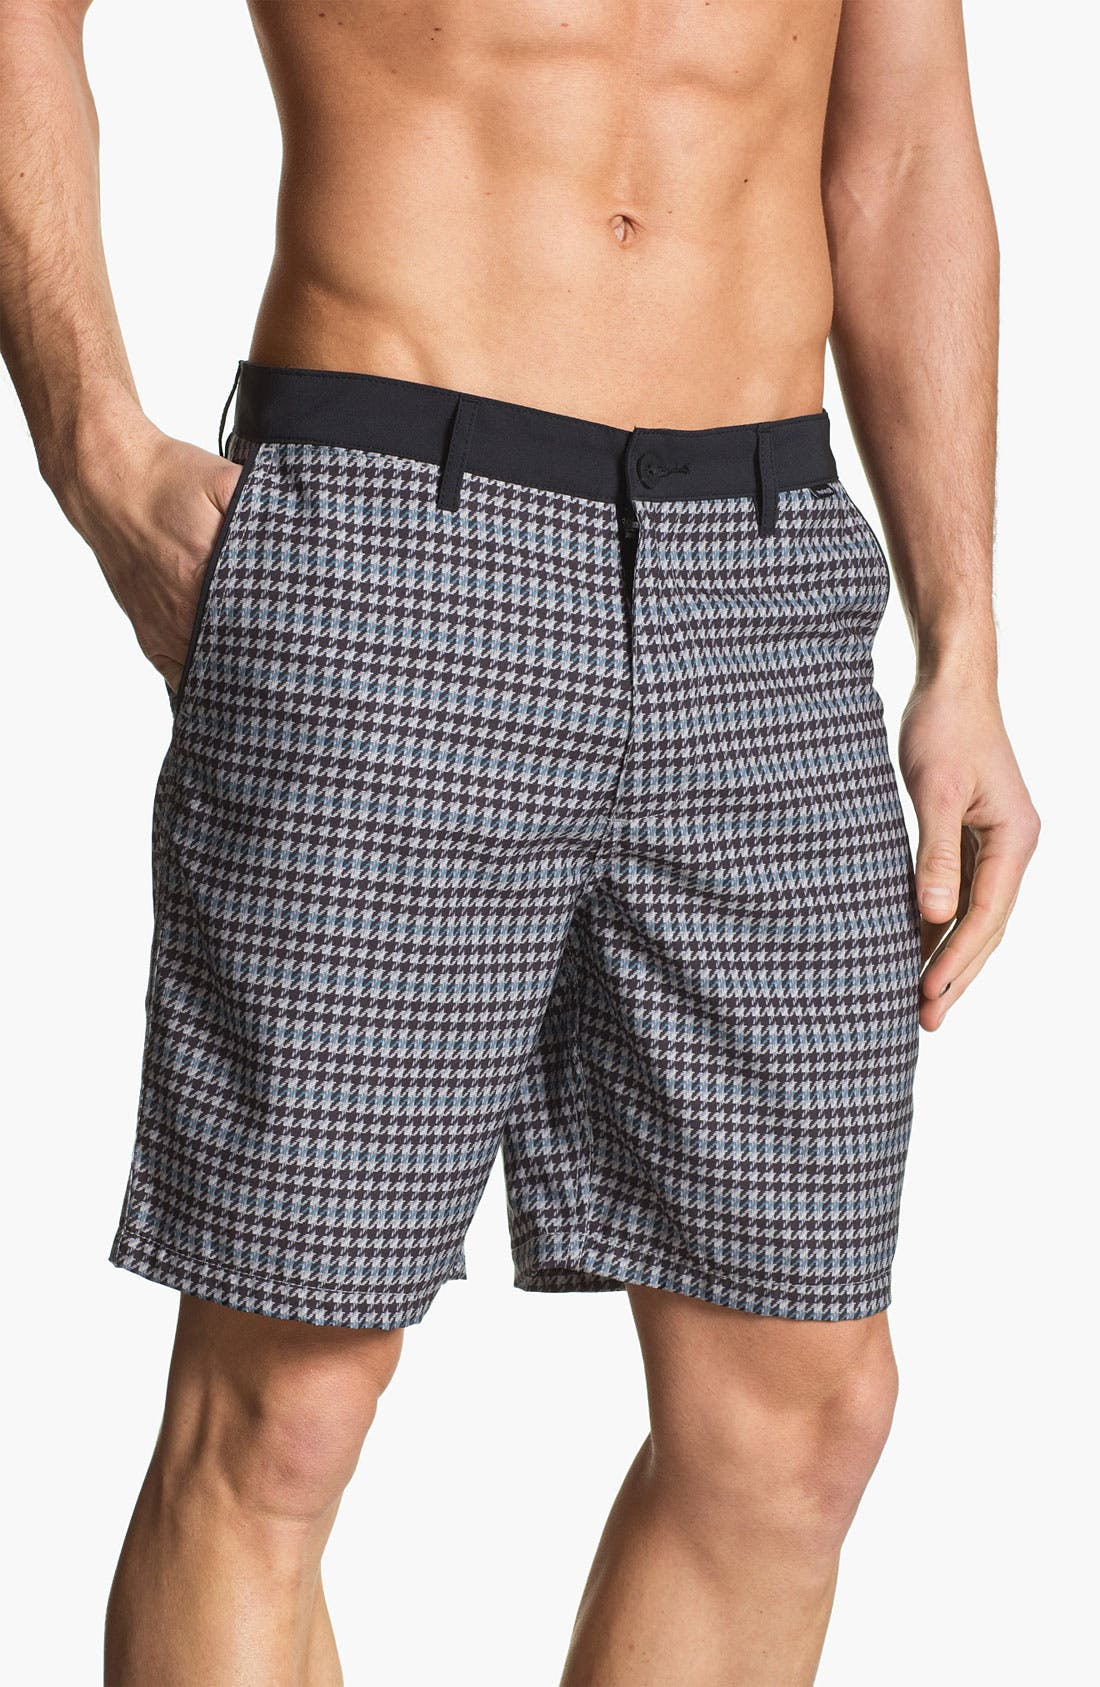 Alternate Image 1 Selected - Hurley 'Squad' Boardwalk Shorts